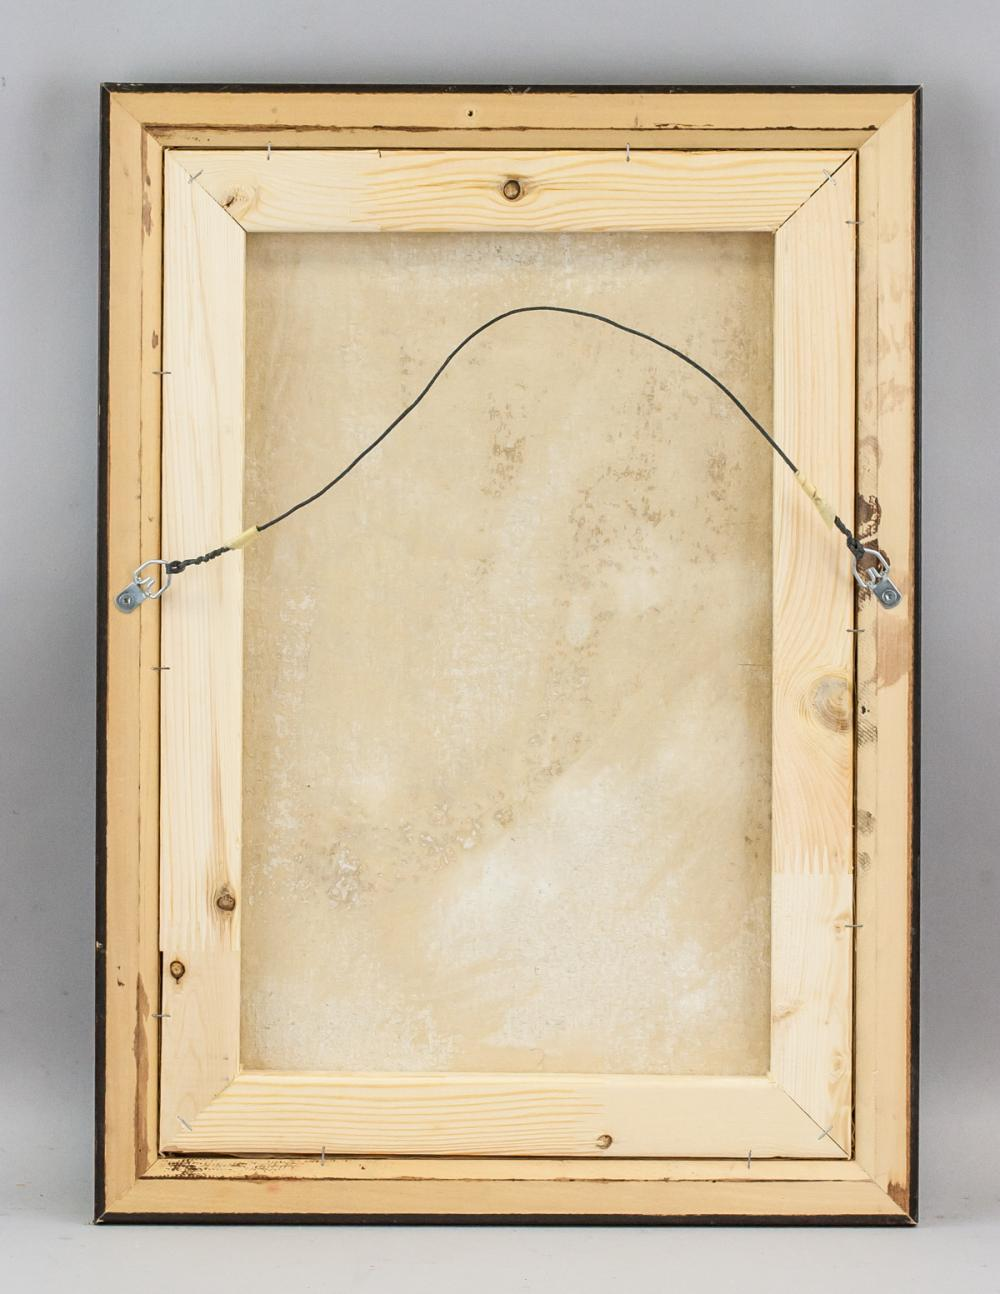 Lot 118: Manolo Millares Spanish Abstract Oil on Canvas